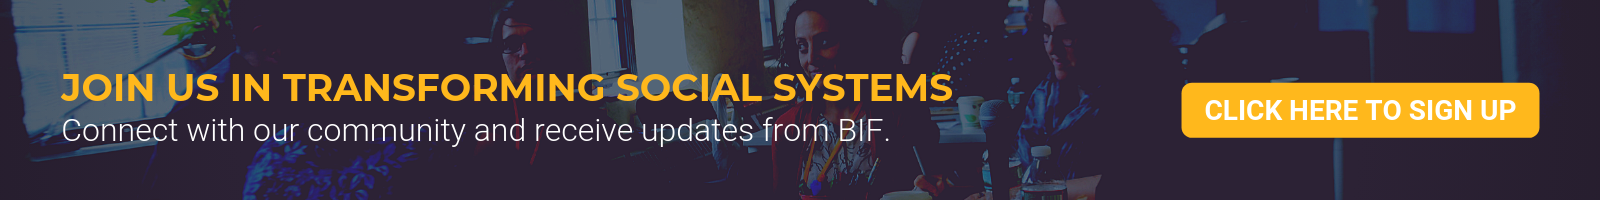 Join the BIF Community